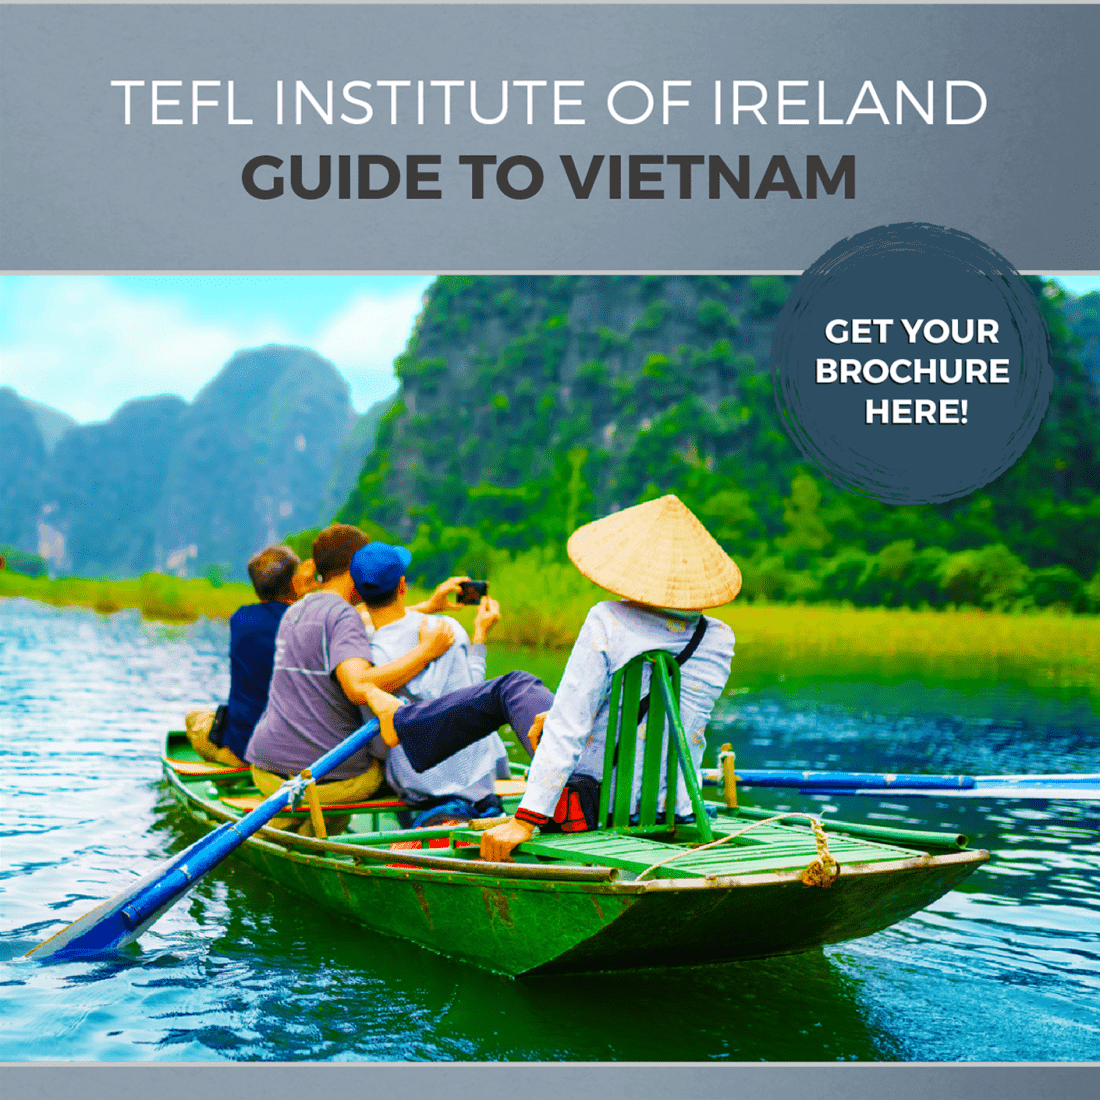 Image for Teach English and explore Vietnam whilst experiencing its rich culture and natural beauty